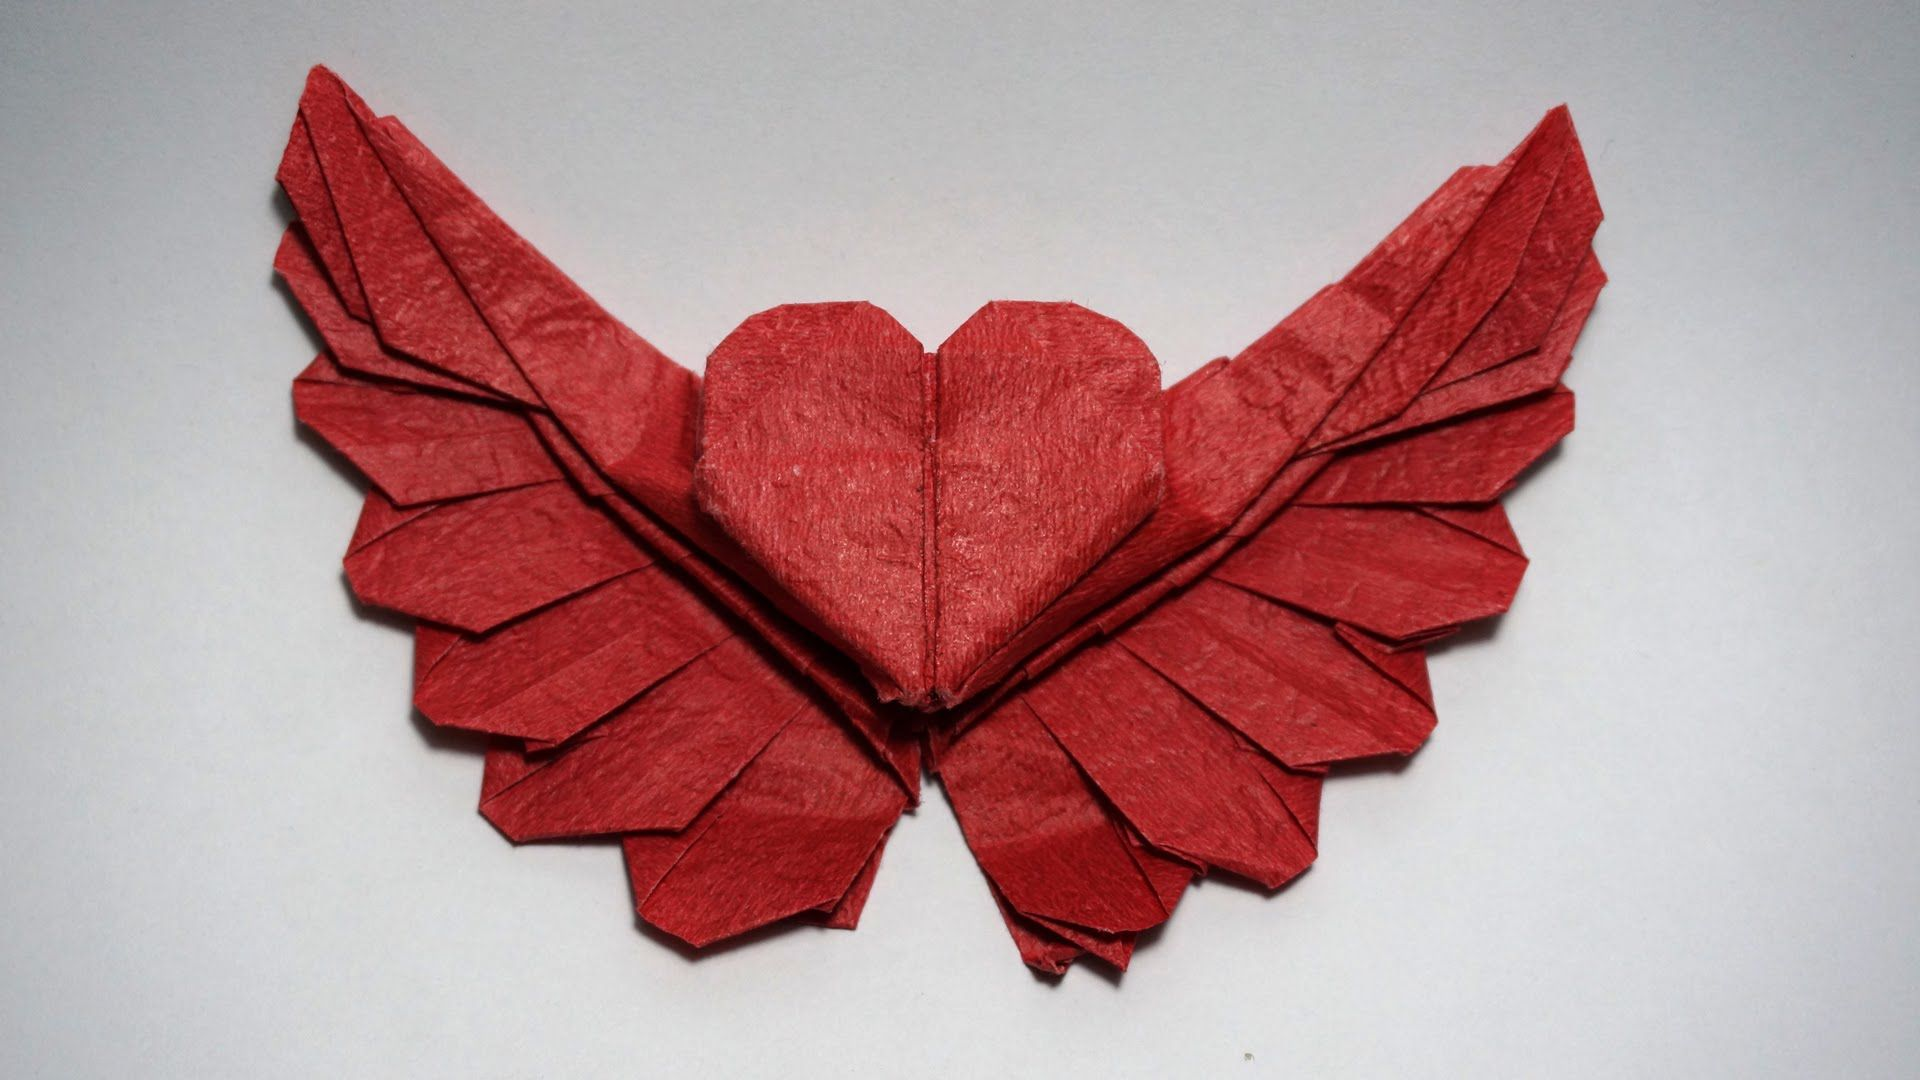 How to make an origami heart - origami winged heart 2.0 ... - photo#32